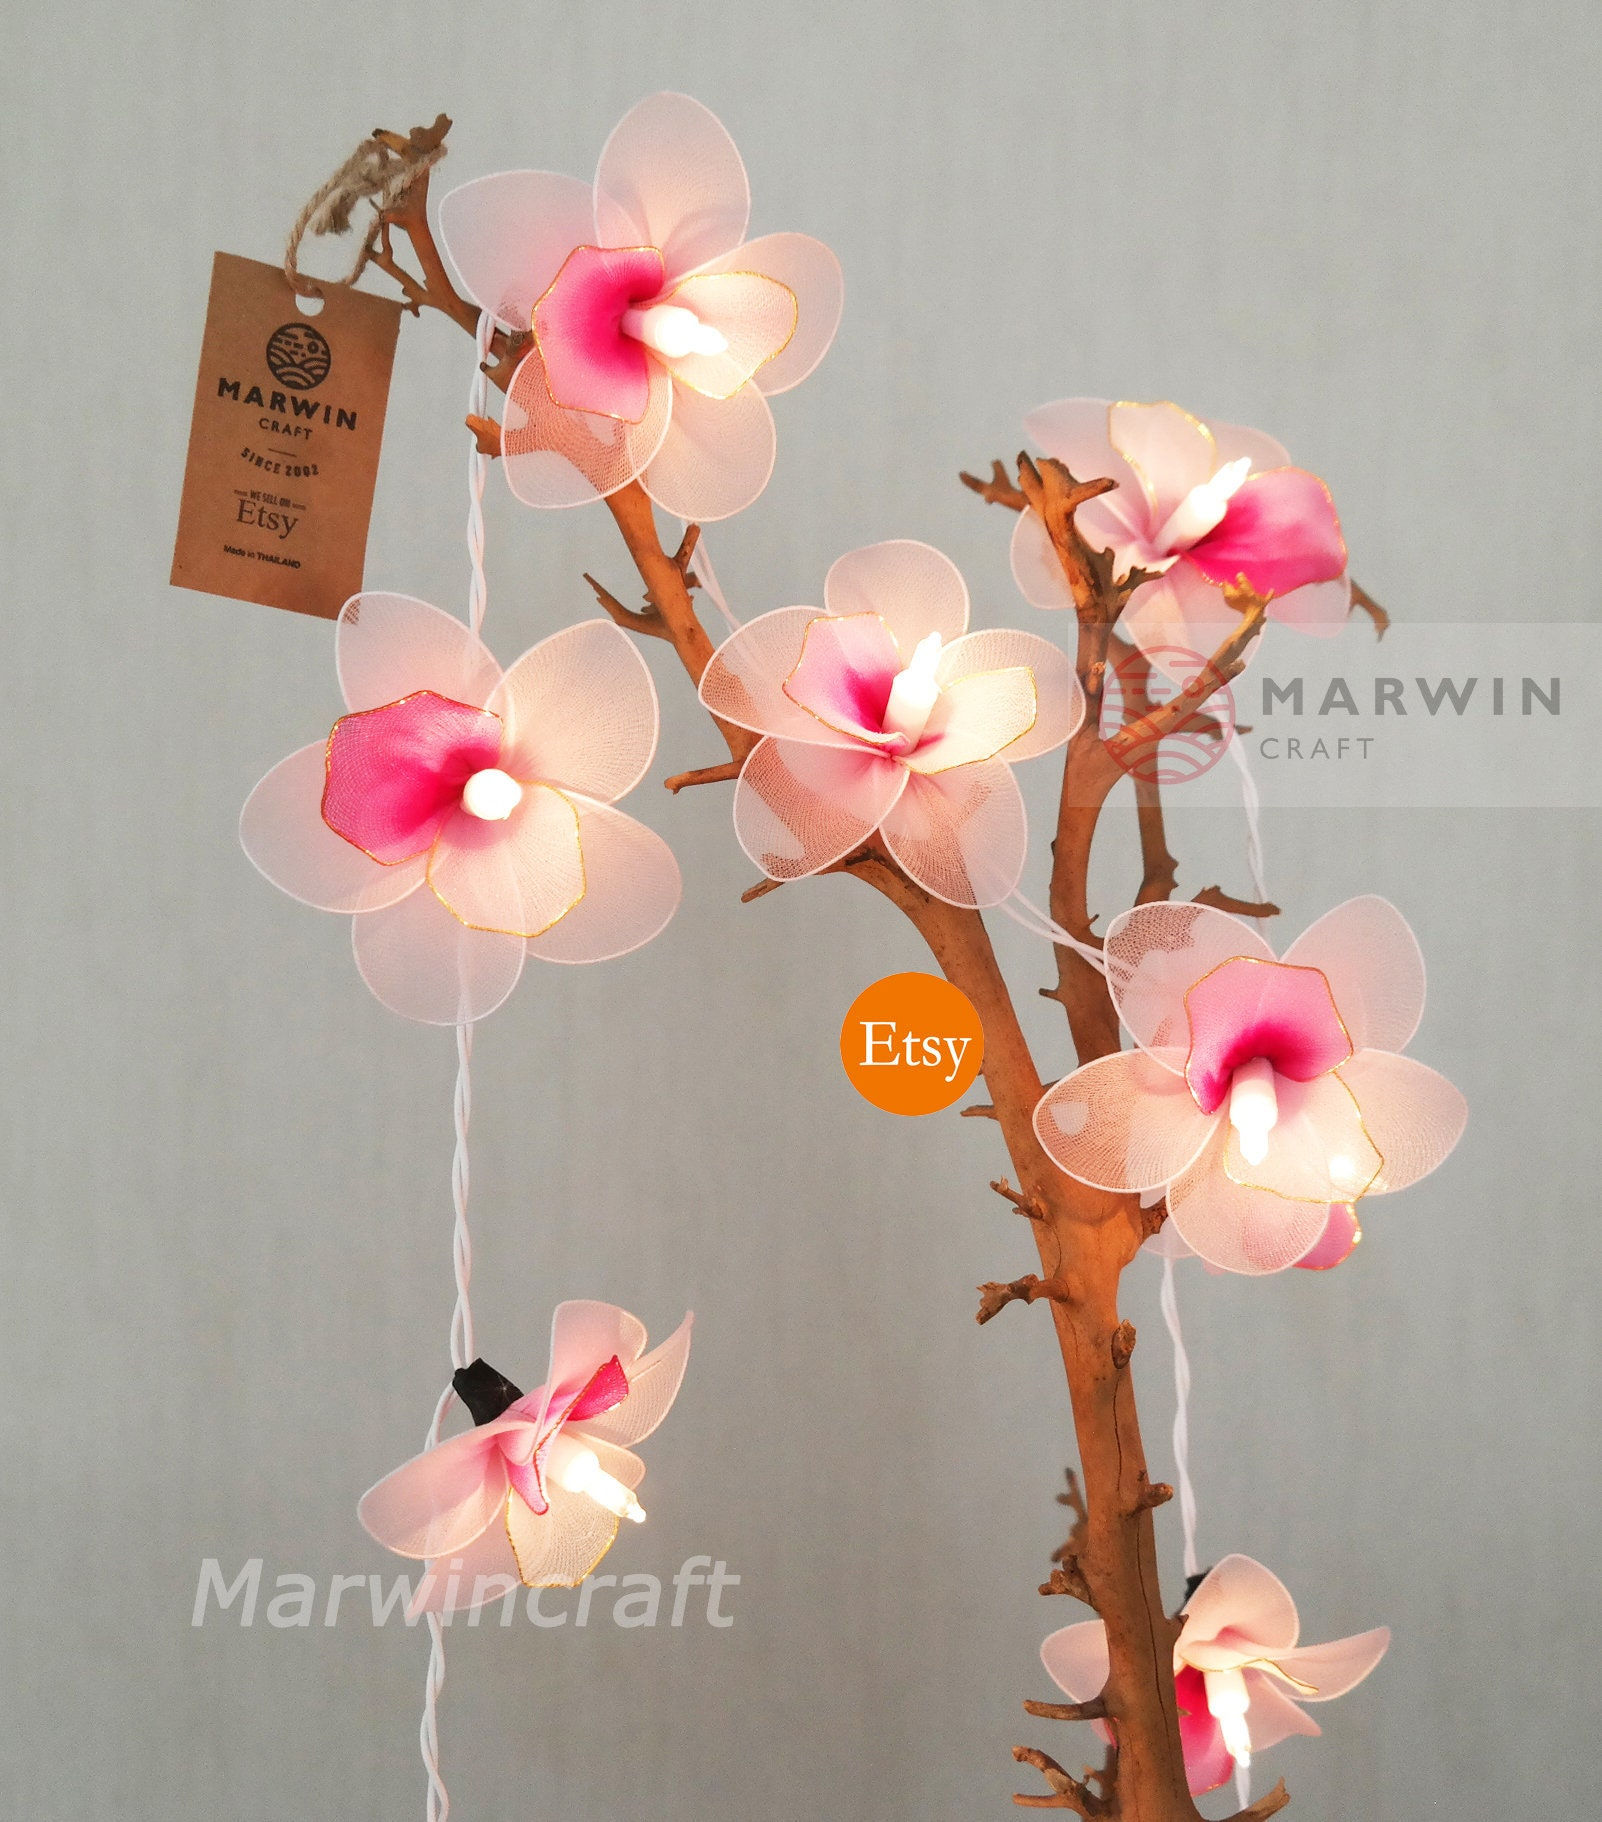 20 Light Pink Orchid String Lights Flower Fairy Lights Bedroom Etsy